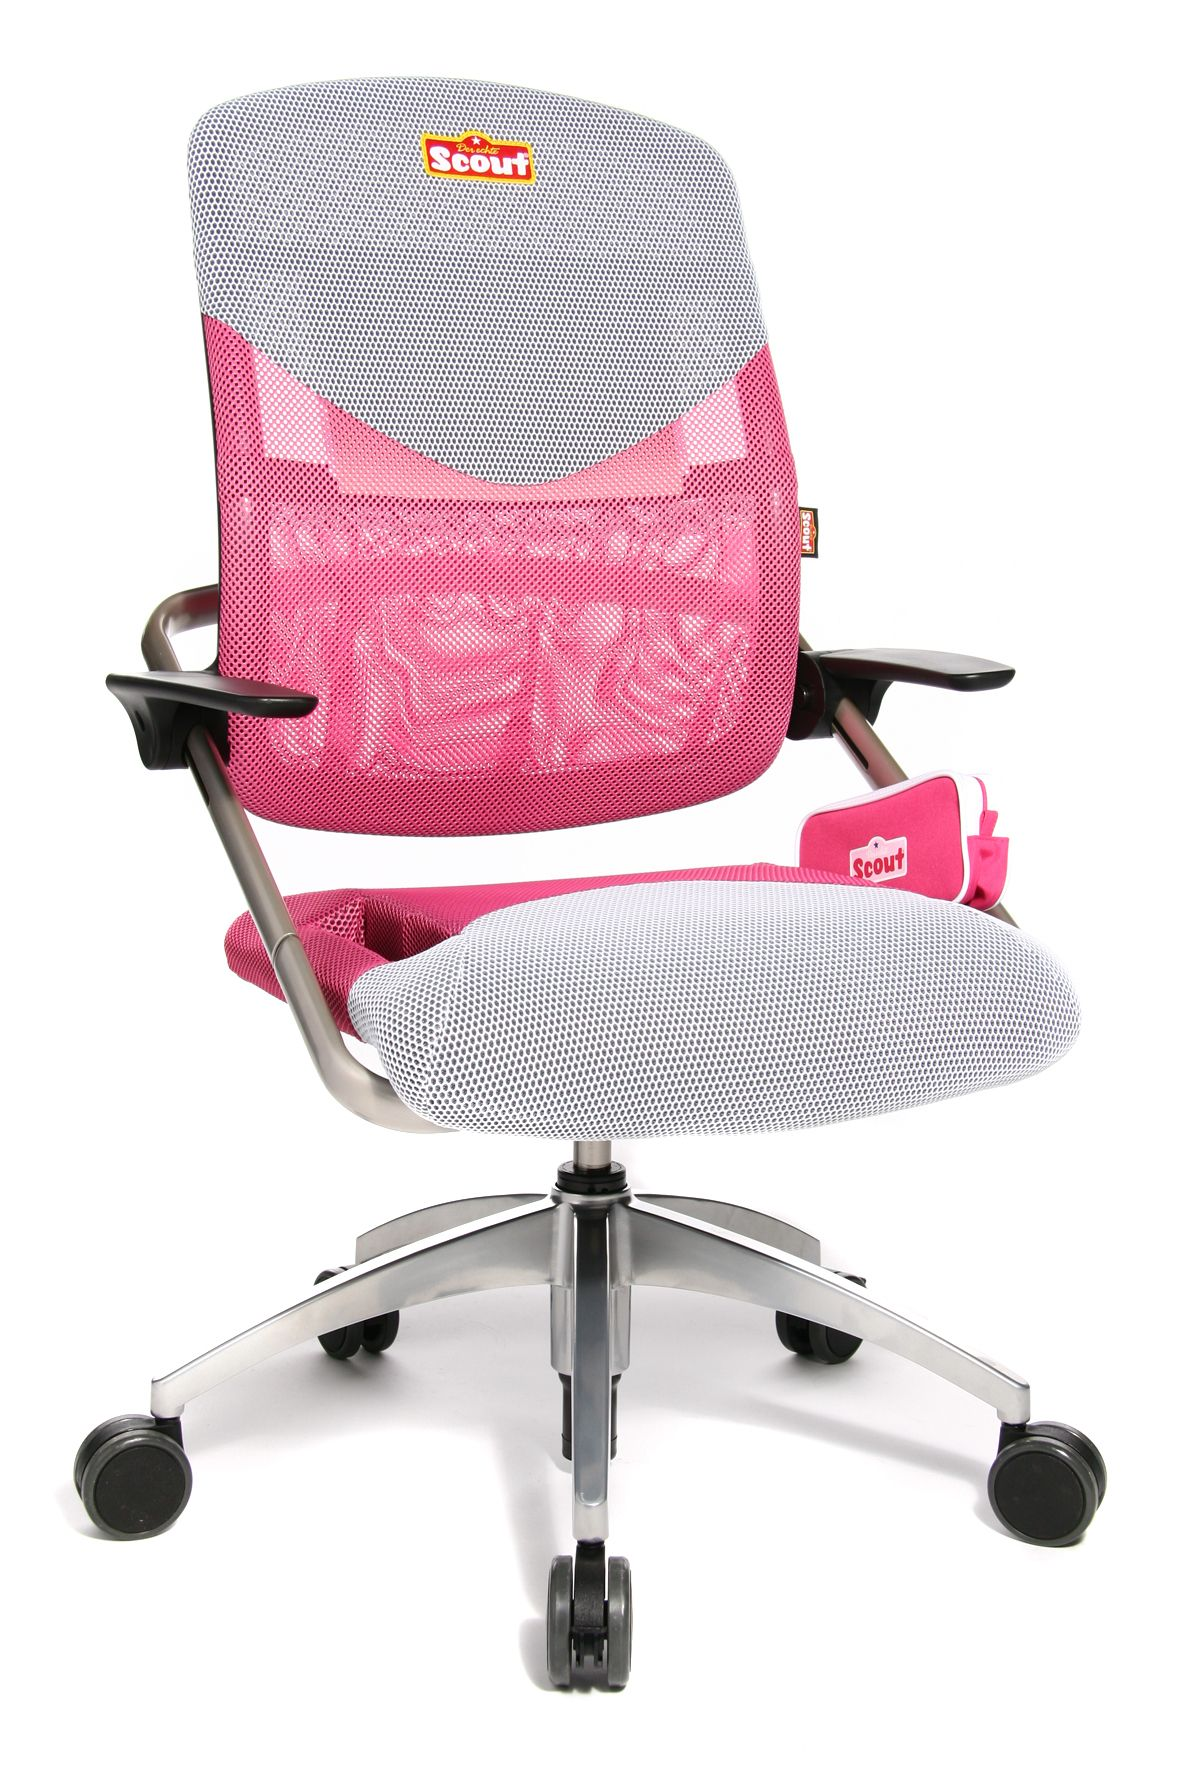 Scout 3d Ergonomic Chair In Pink In 2020 Chair Best Desk Desk